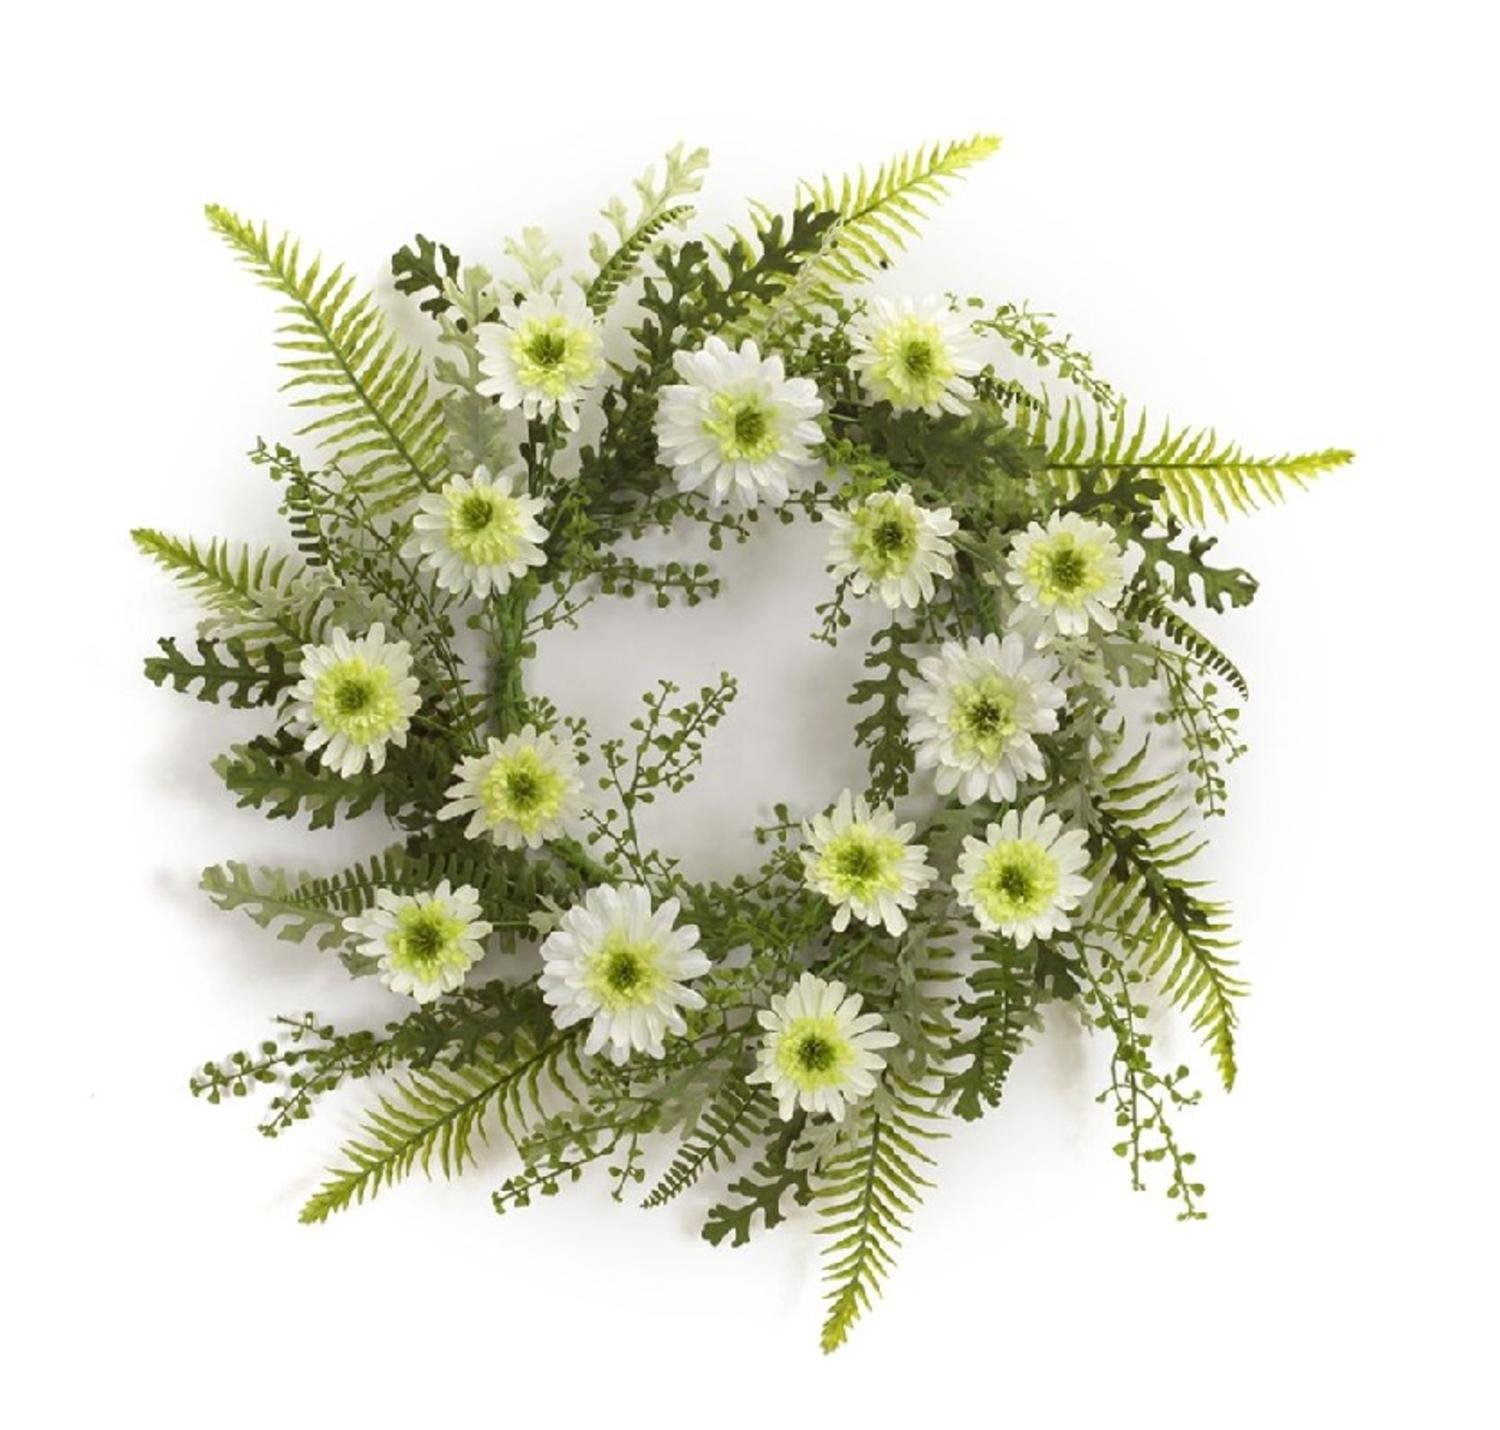 Pack of 2 Blooming Spring Zinnia Flowers with Green Foliage Wreath 24''- Unlit